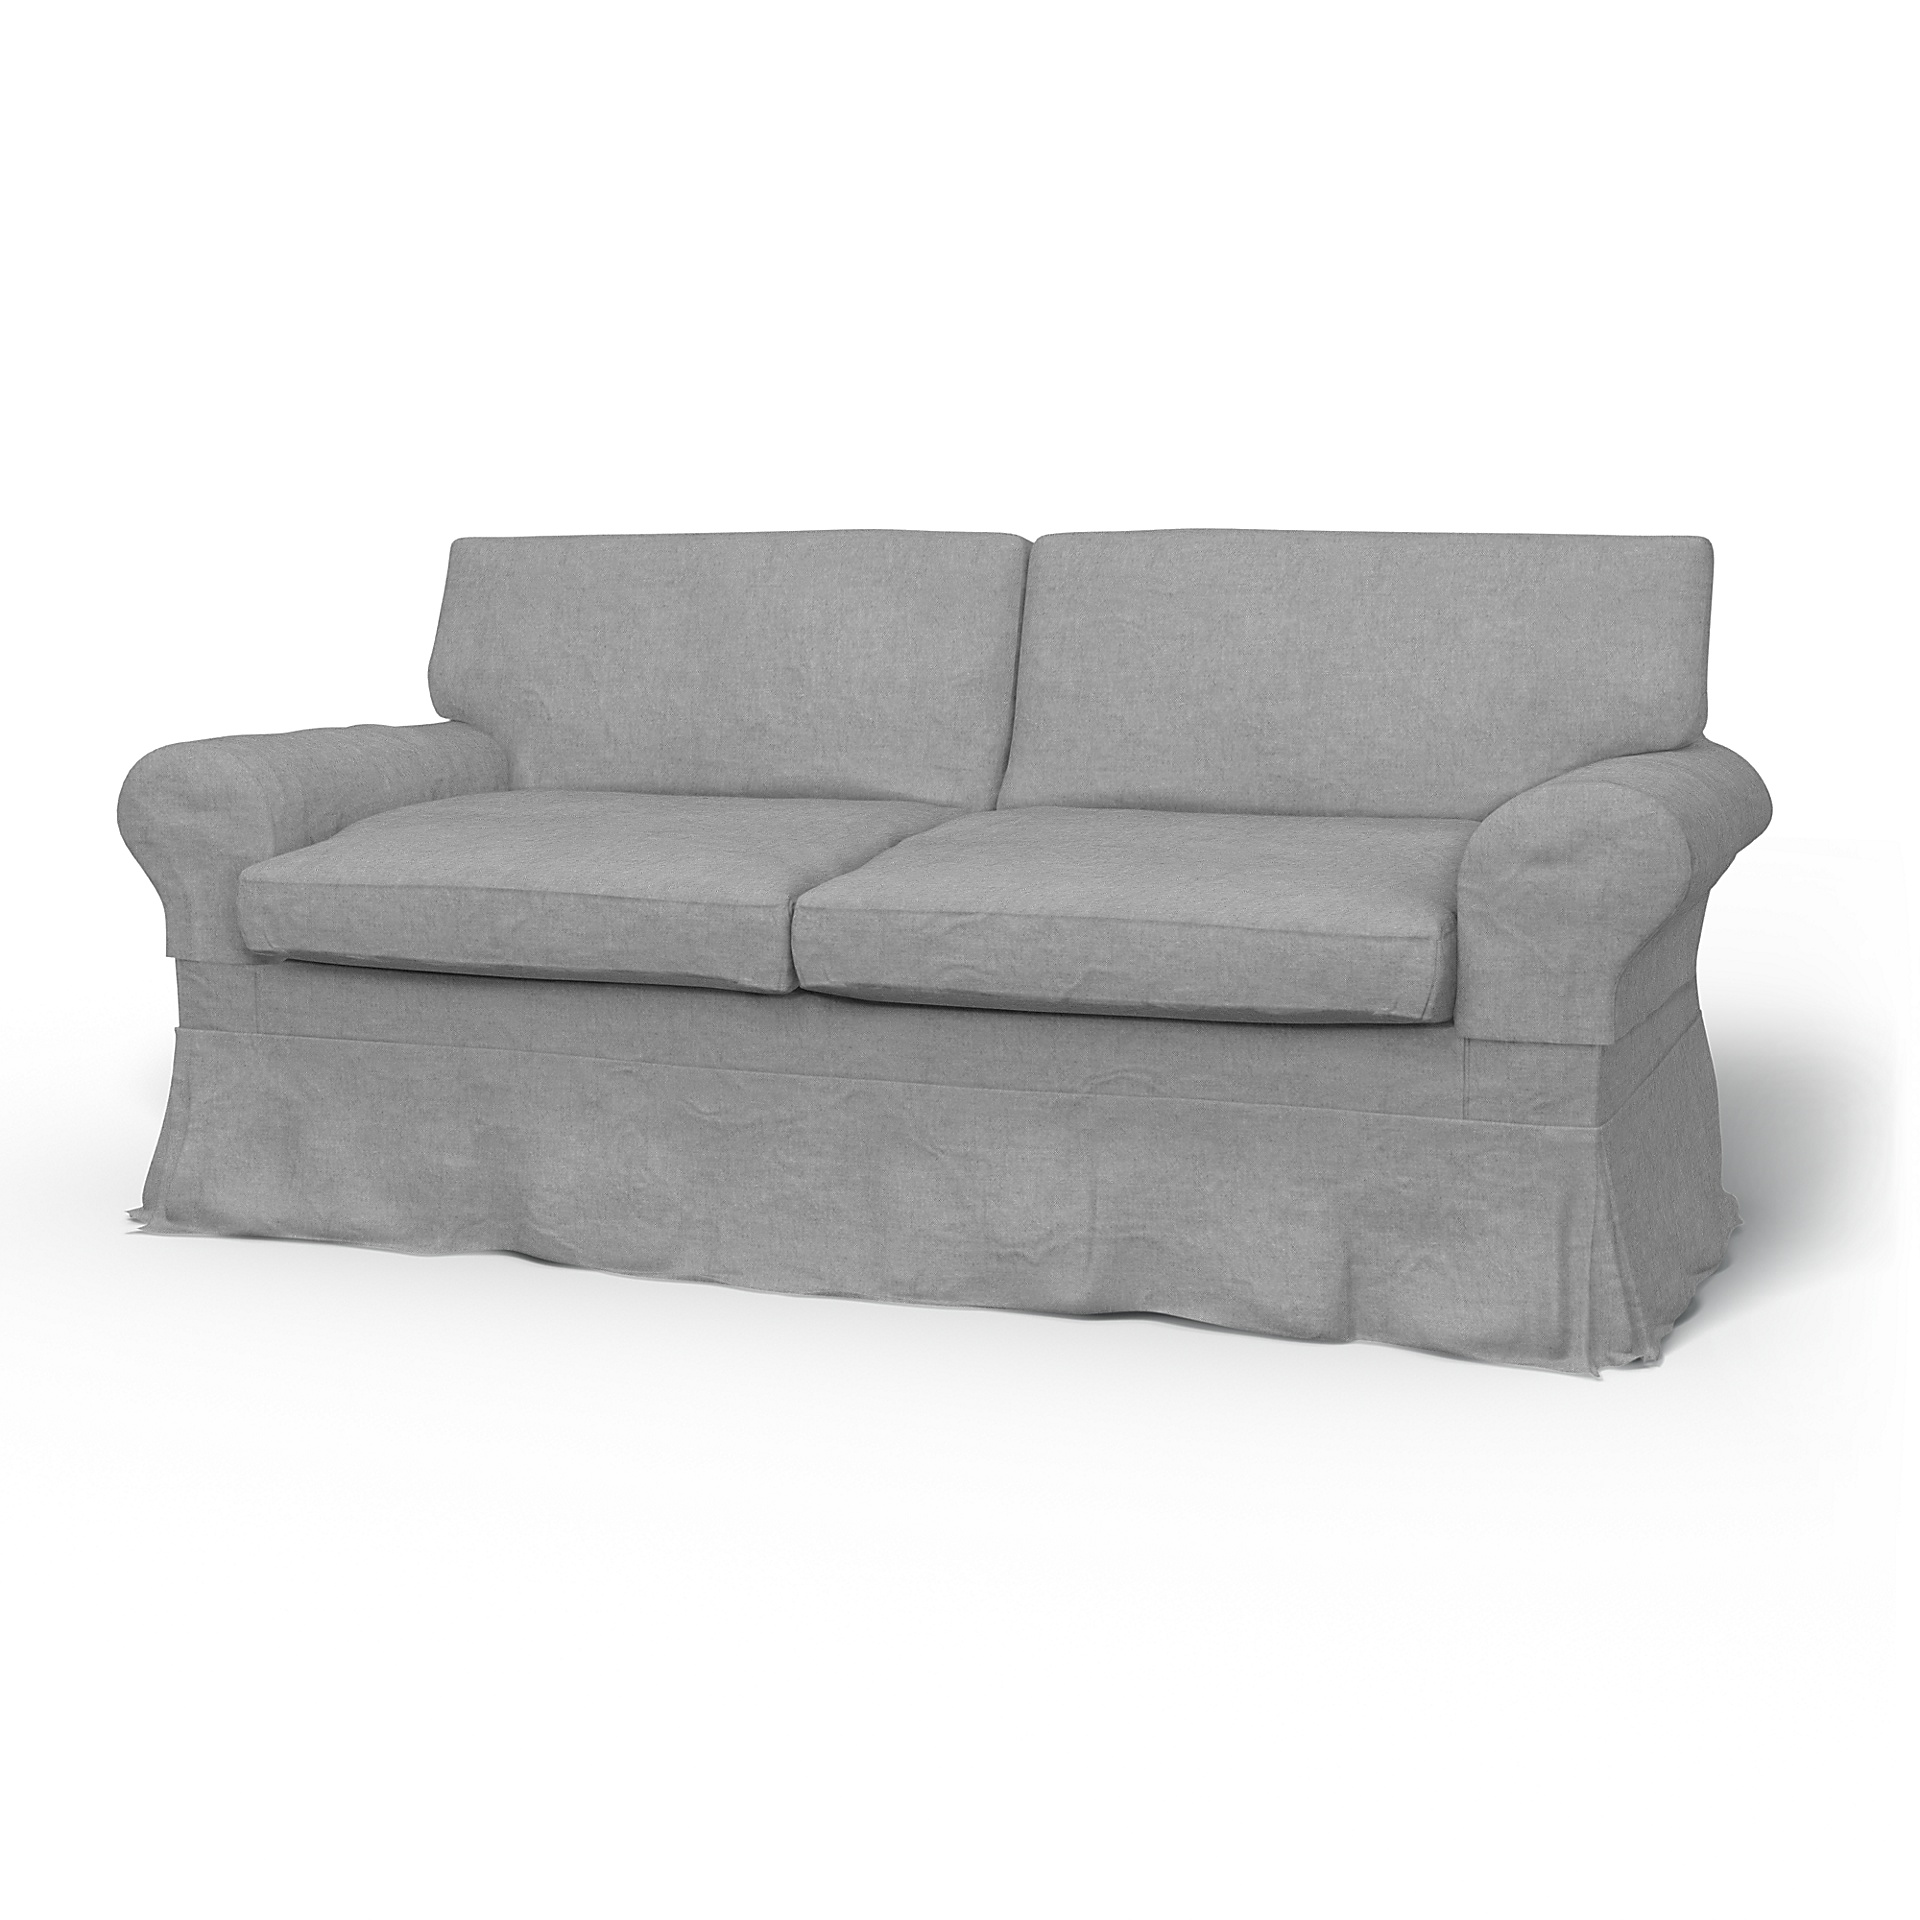 buy popular 5d1a0 e4311 IKEA Ektorp, 2 Seater sofa bed cover Loose Fit | Bemz